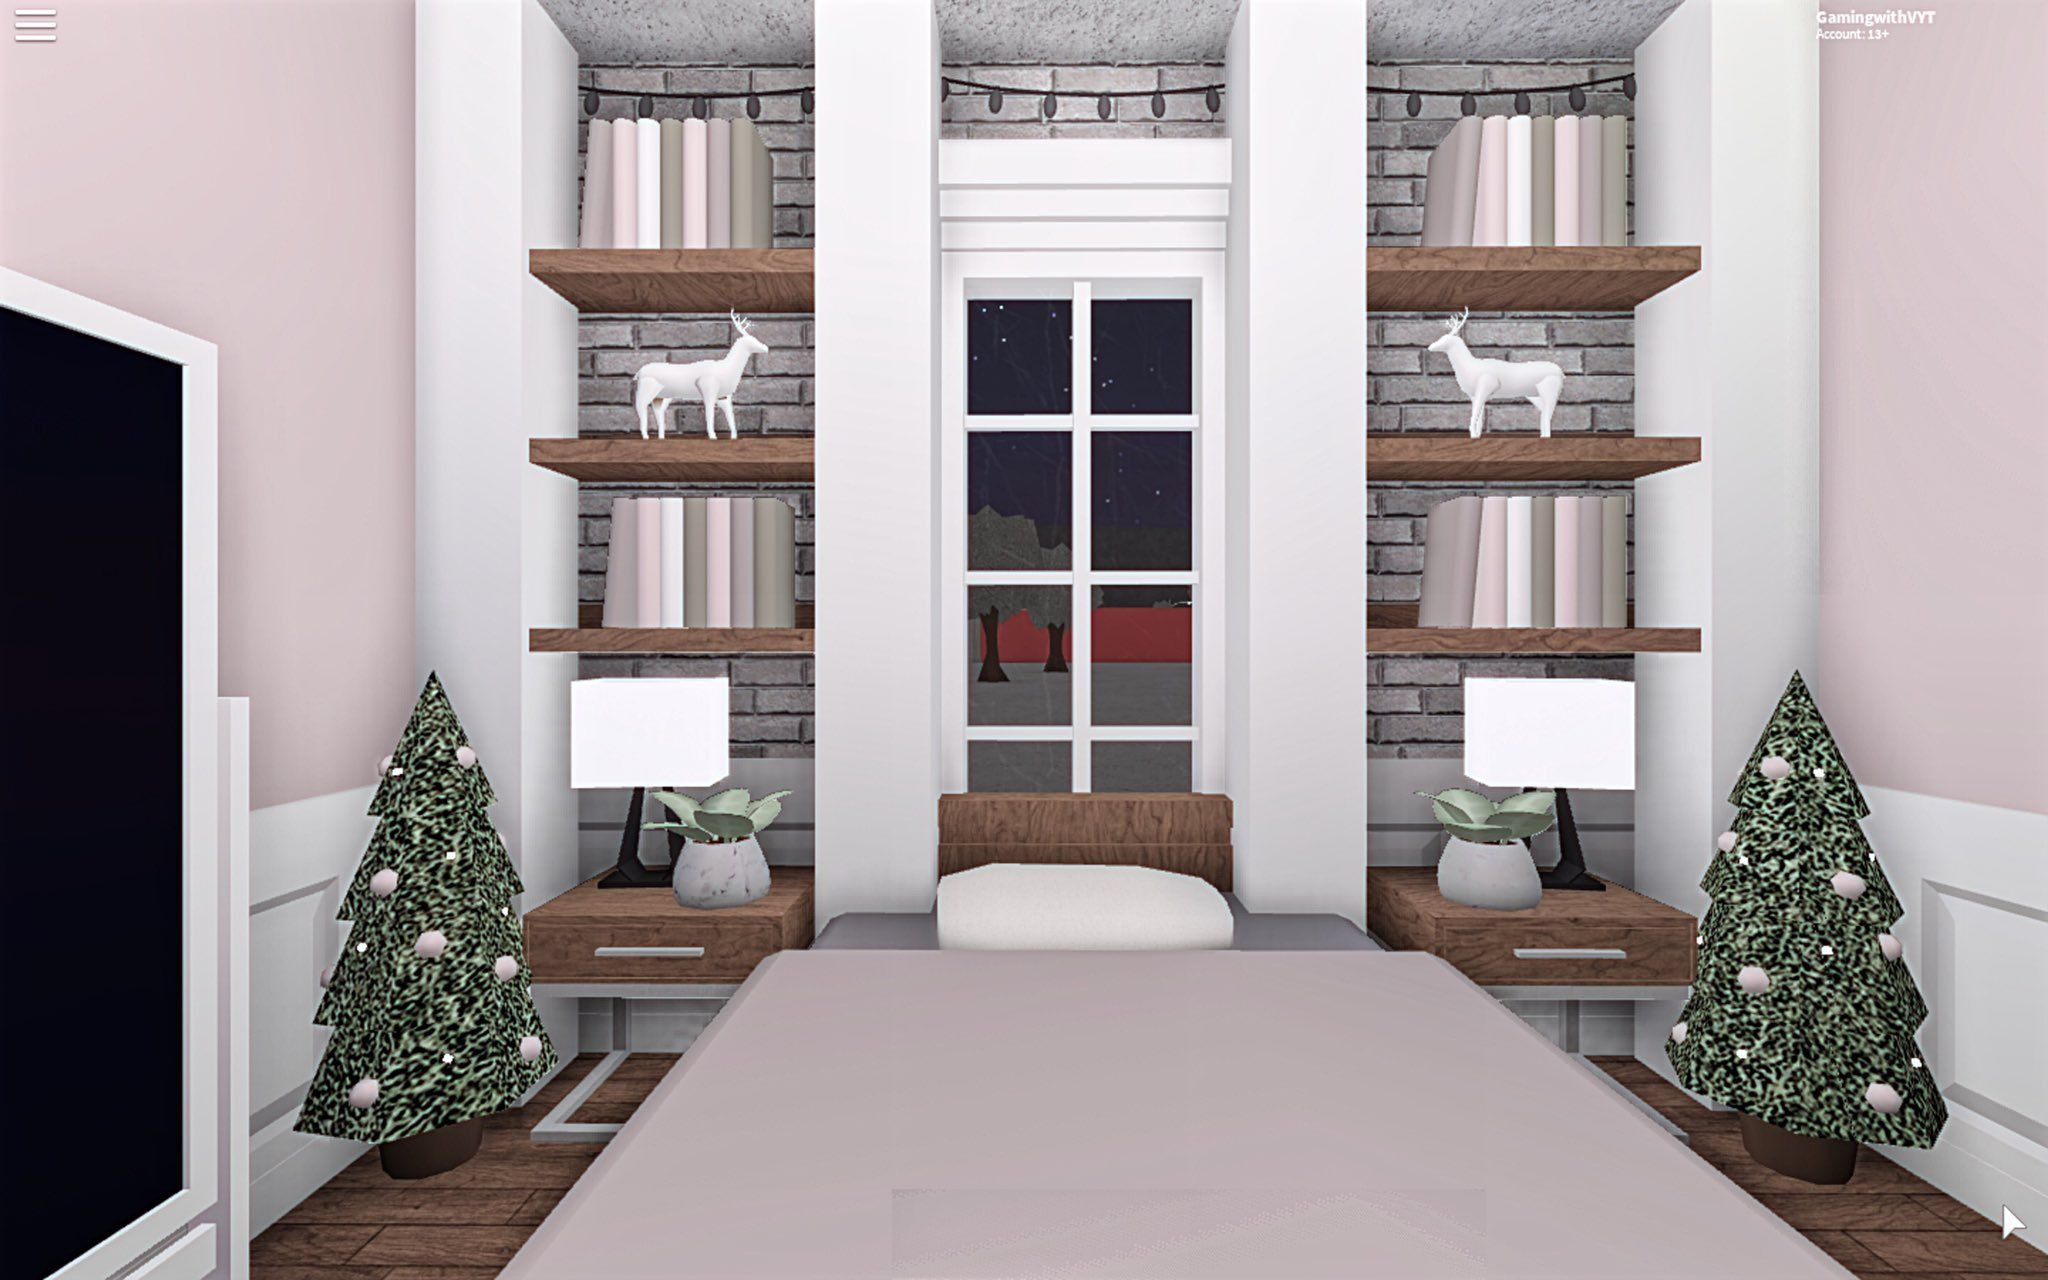 V. ♡ on Bedroom house plans, Aesthetic rooms, Sims house